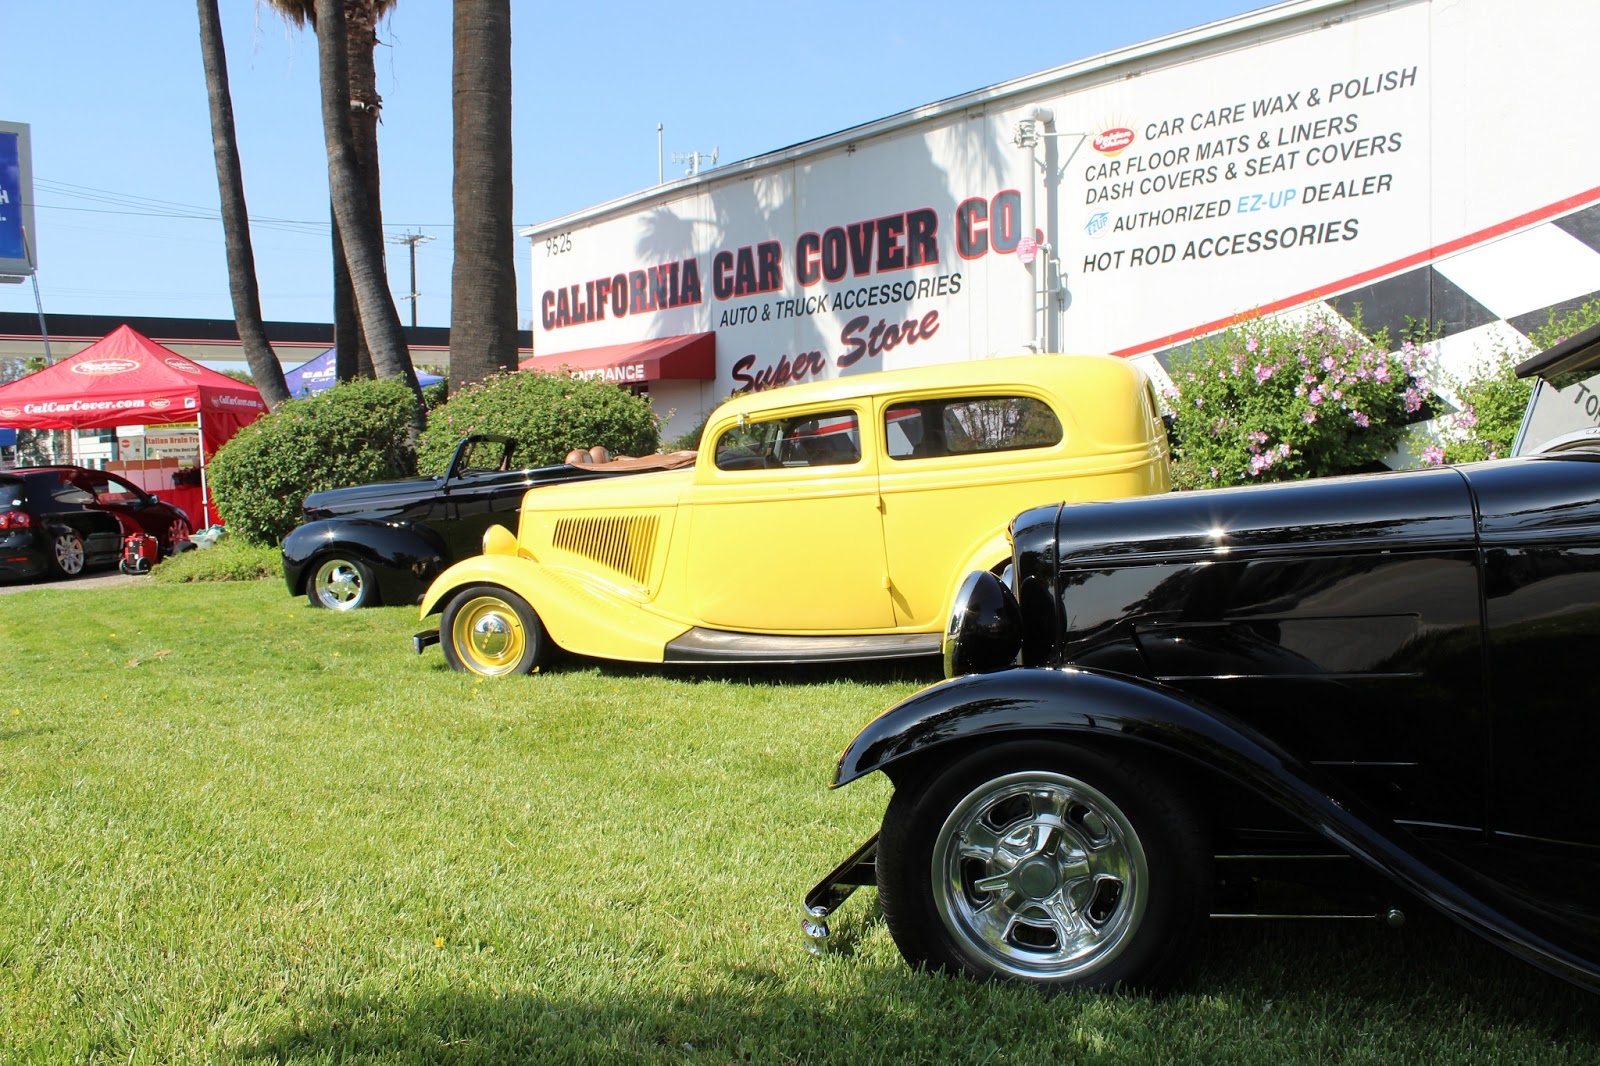 Covering Classic Cars Classic Ford Mustang Show At California - Car show floor covering